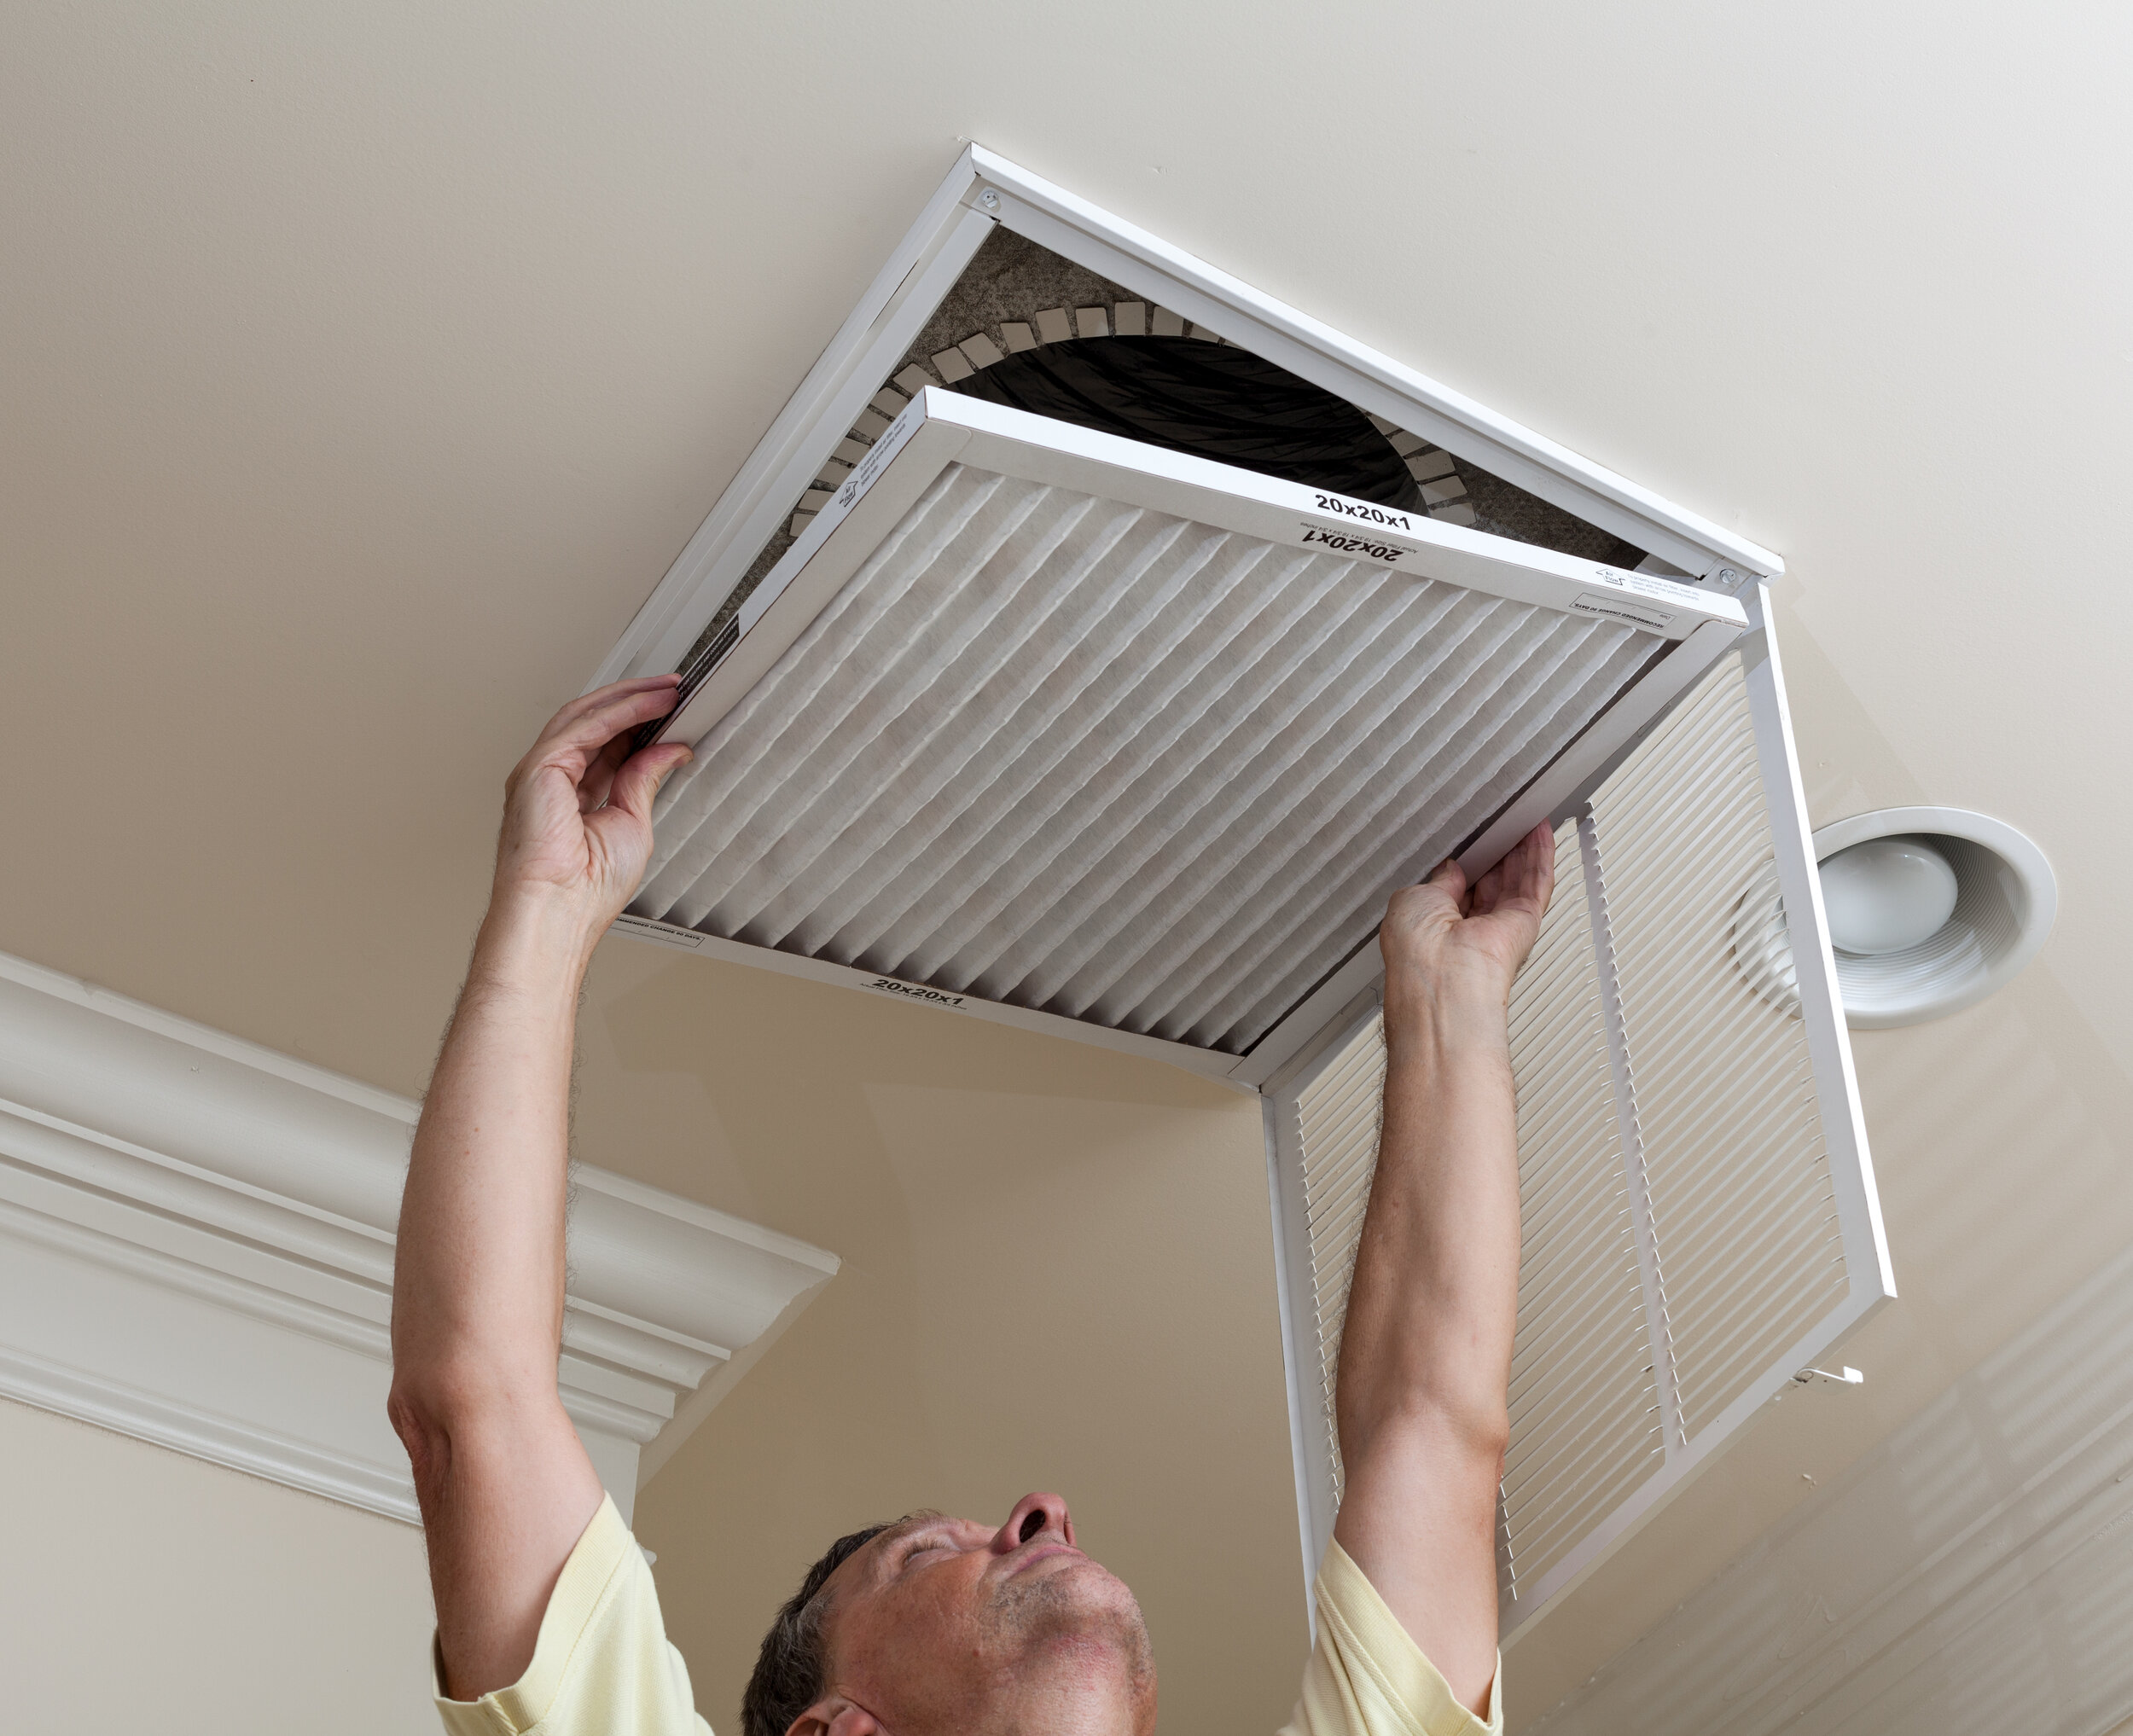 When was the last time you changed your air filter? -